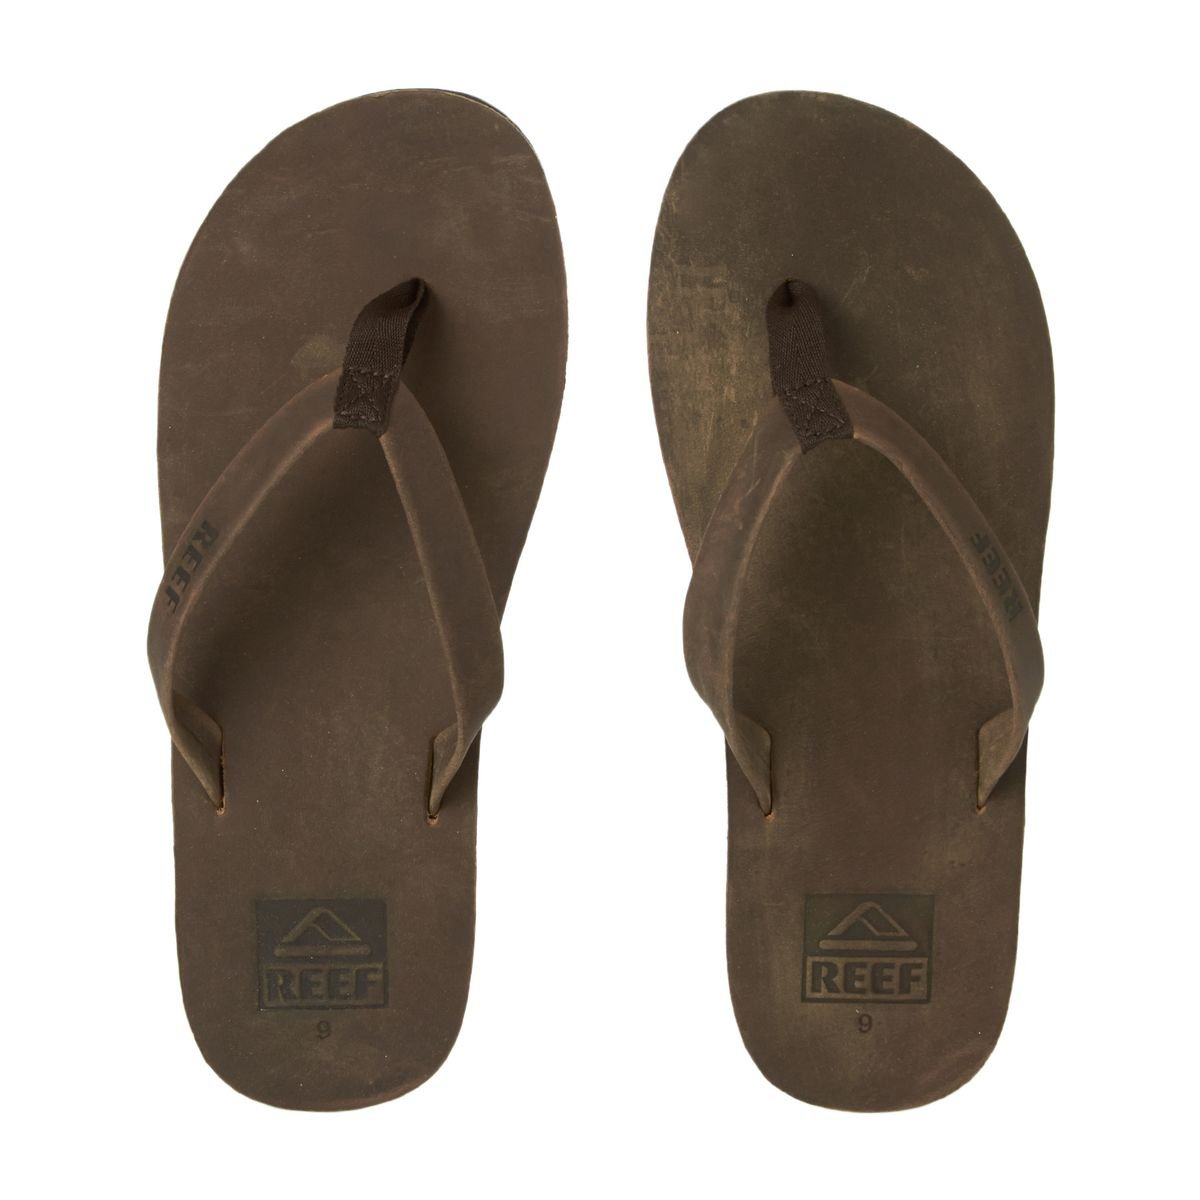 4f72b1e1829b Reef Mens Skinny Leather Thong Toe Post Bronze Surfer Flip Flops Sandals - Bronze  Leather - 12  Amazon.co.uk  Shoes   Bags